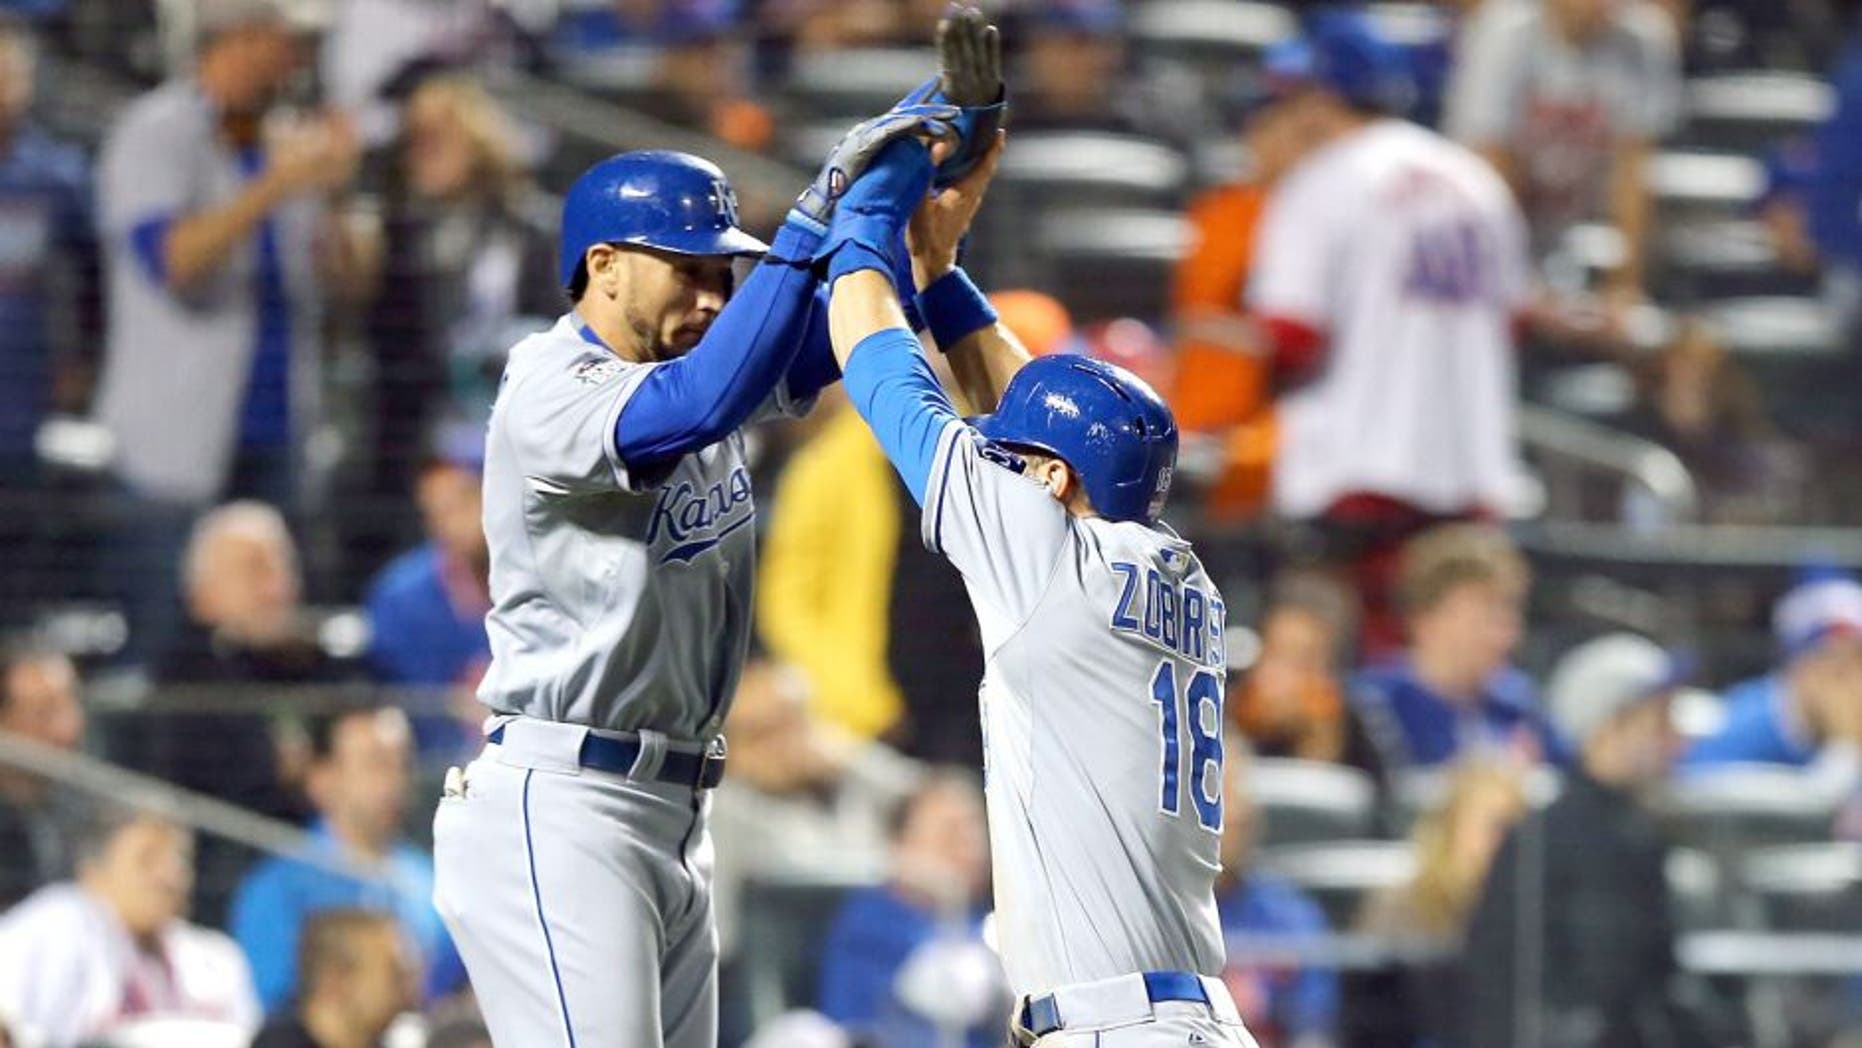 NEW YORK, NY - NOVEMBER 01: Ben Zobrist #18 of the Kansas City Royals celebrates with Christian Colon #16 and Alcides Escobar #2 after scoring off of a three run RBI double hit by Lorenzo Cain #6 in the twelfth inning against Bartolo Colon #40 of the New York Mets during Game Five of the 2015 World Series at Citi Field on November 1, 2015 in the Flushing neighborhood of the Queens borough of New York City. (Photo by Elsa/Getty Images)